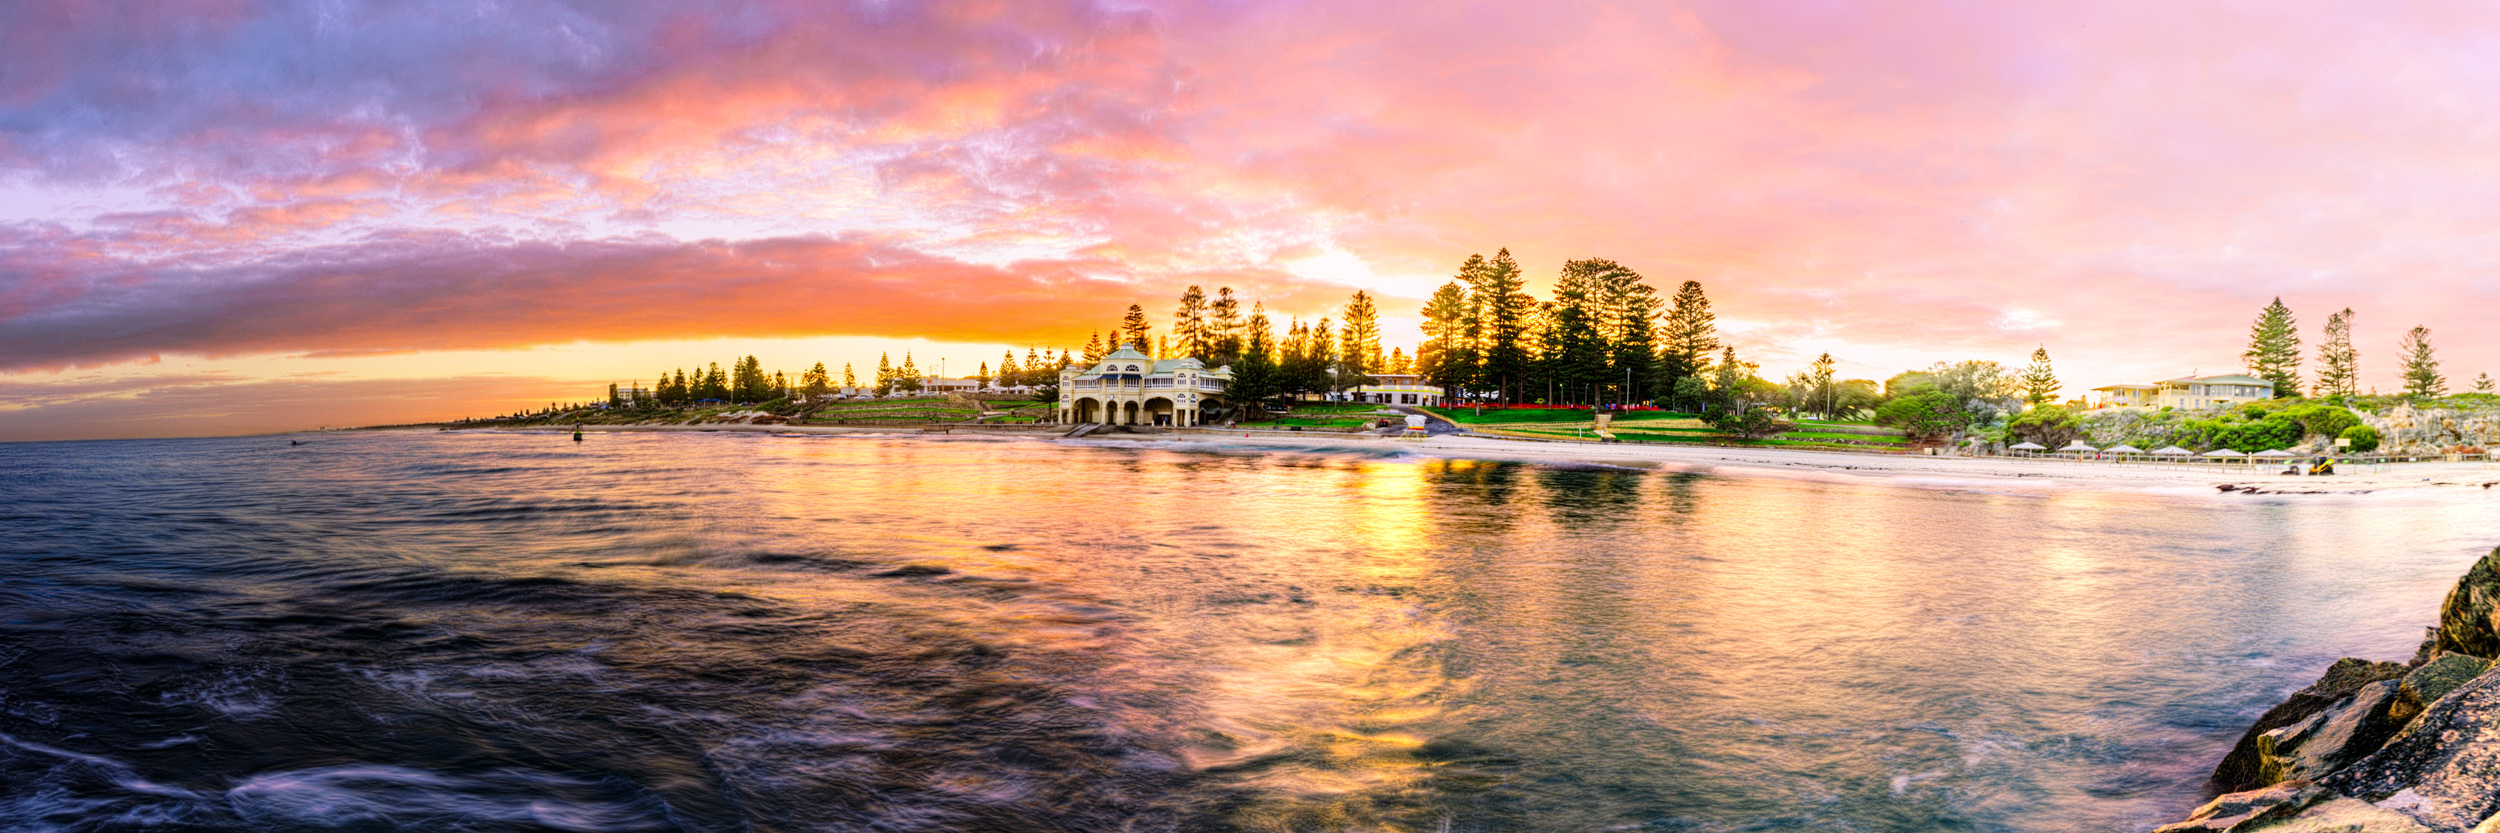 Cottesloe Sunrise   Please contact me at  soulgazingphotography@gmail.com  for sizes, mounting options and prices for your custom made design.